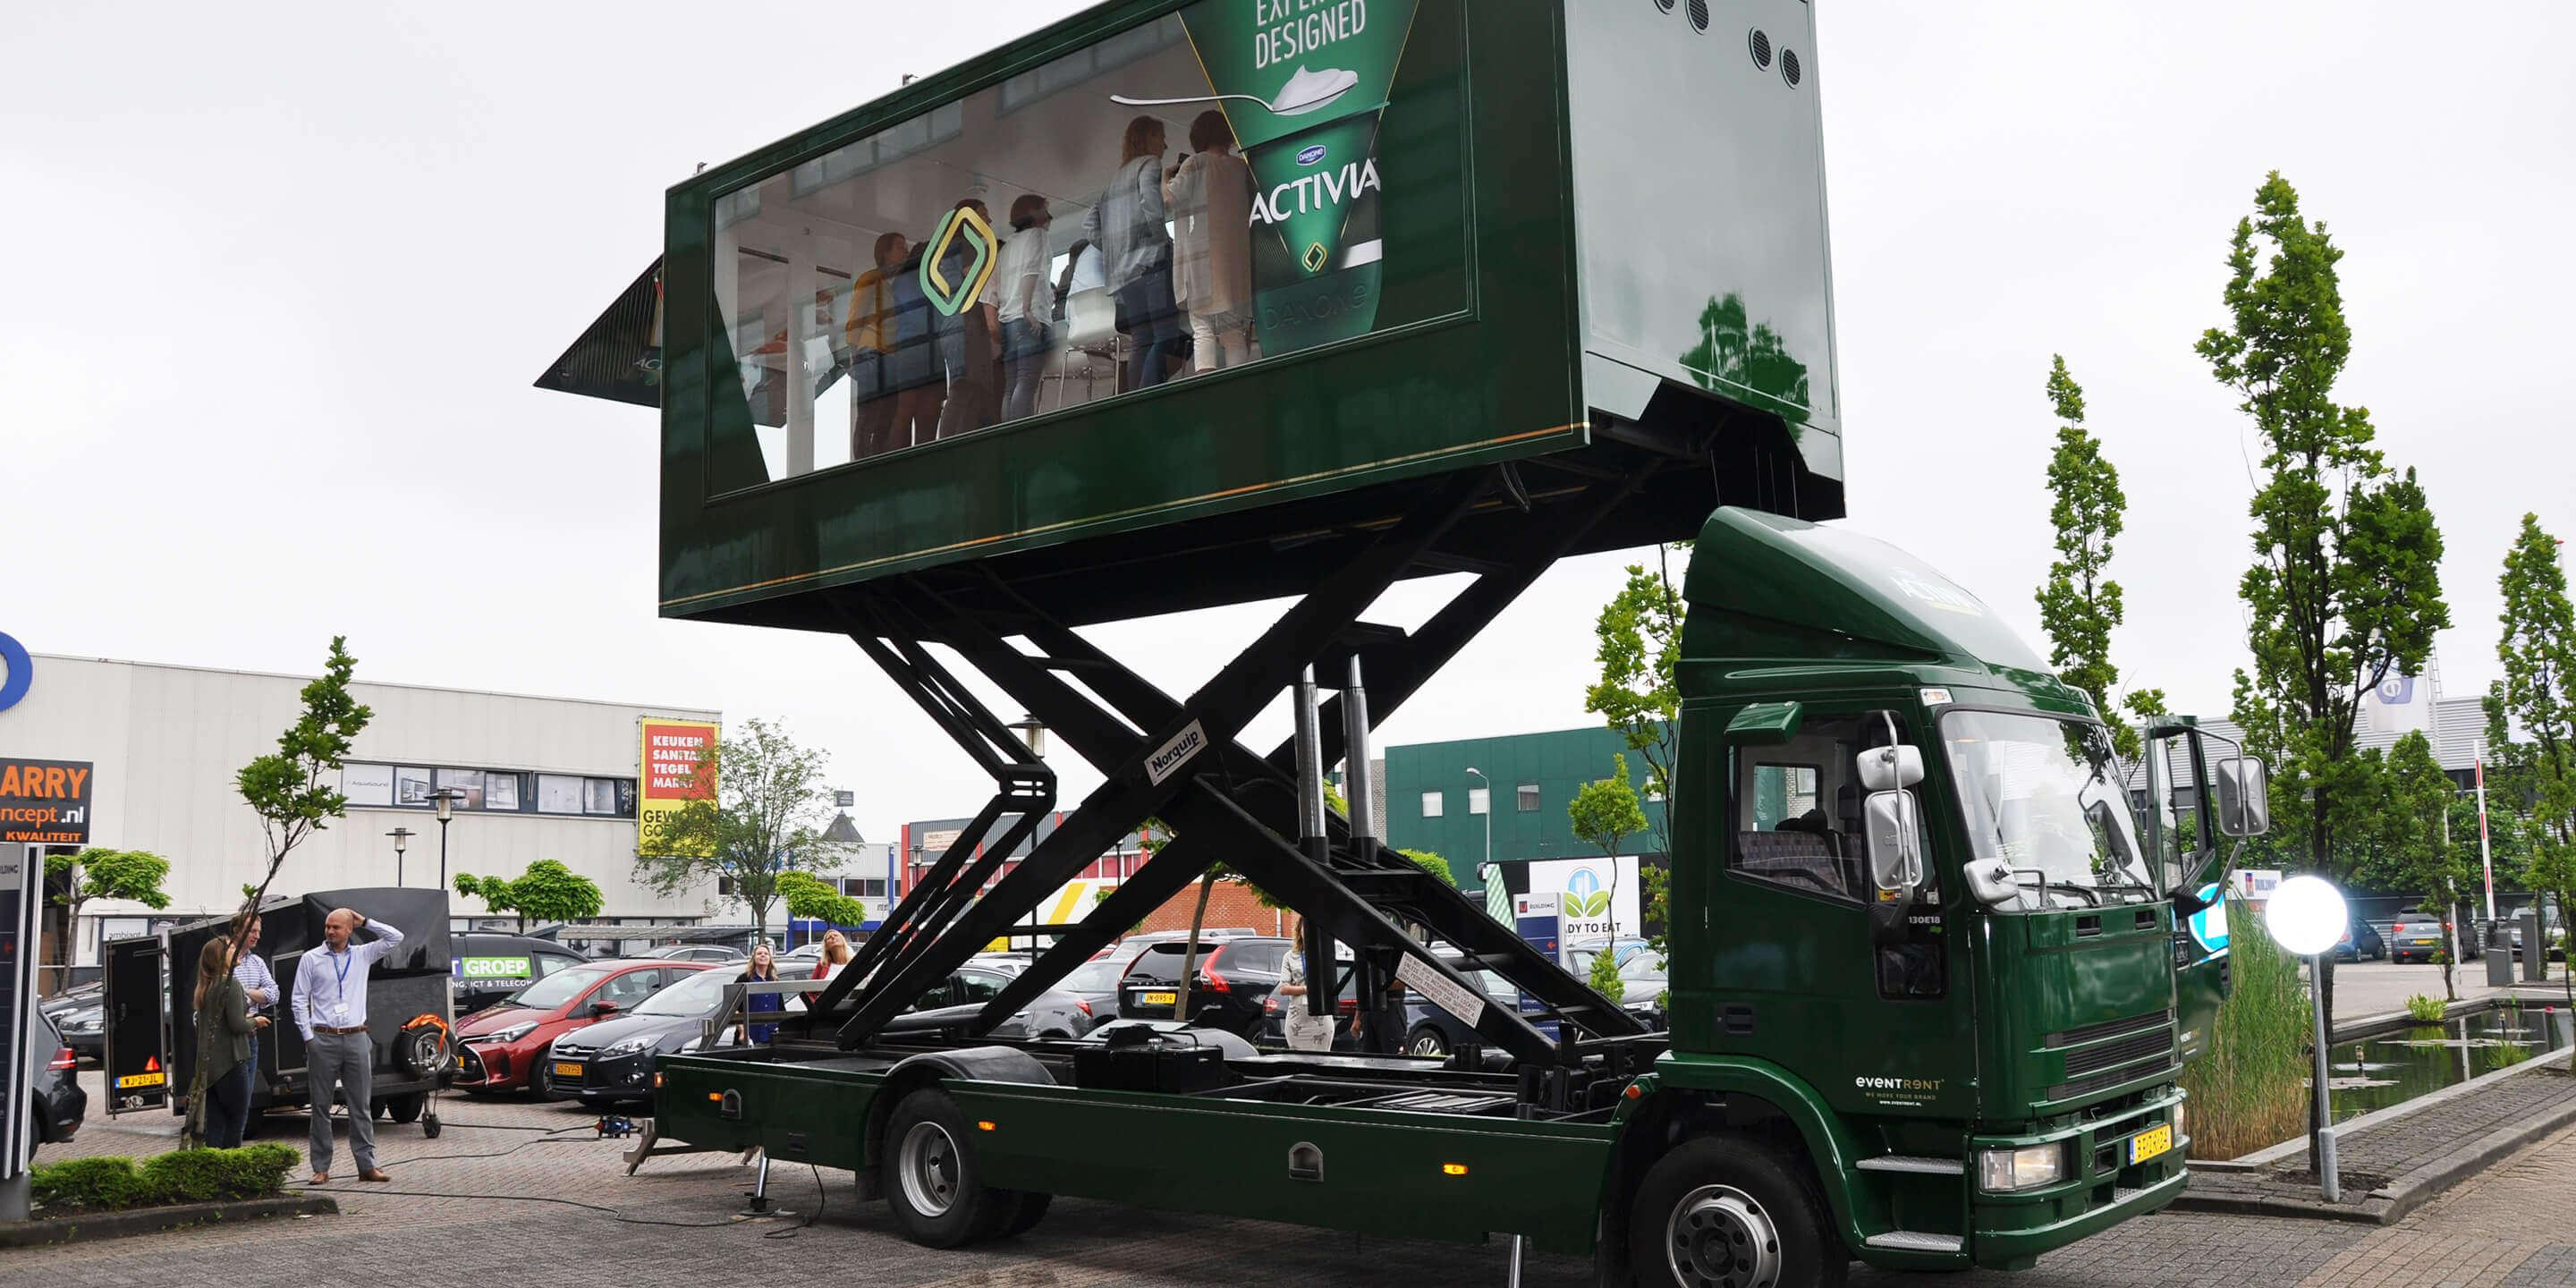 Display Trailers: The Sky Box Mobile Showroom for Danone